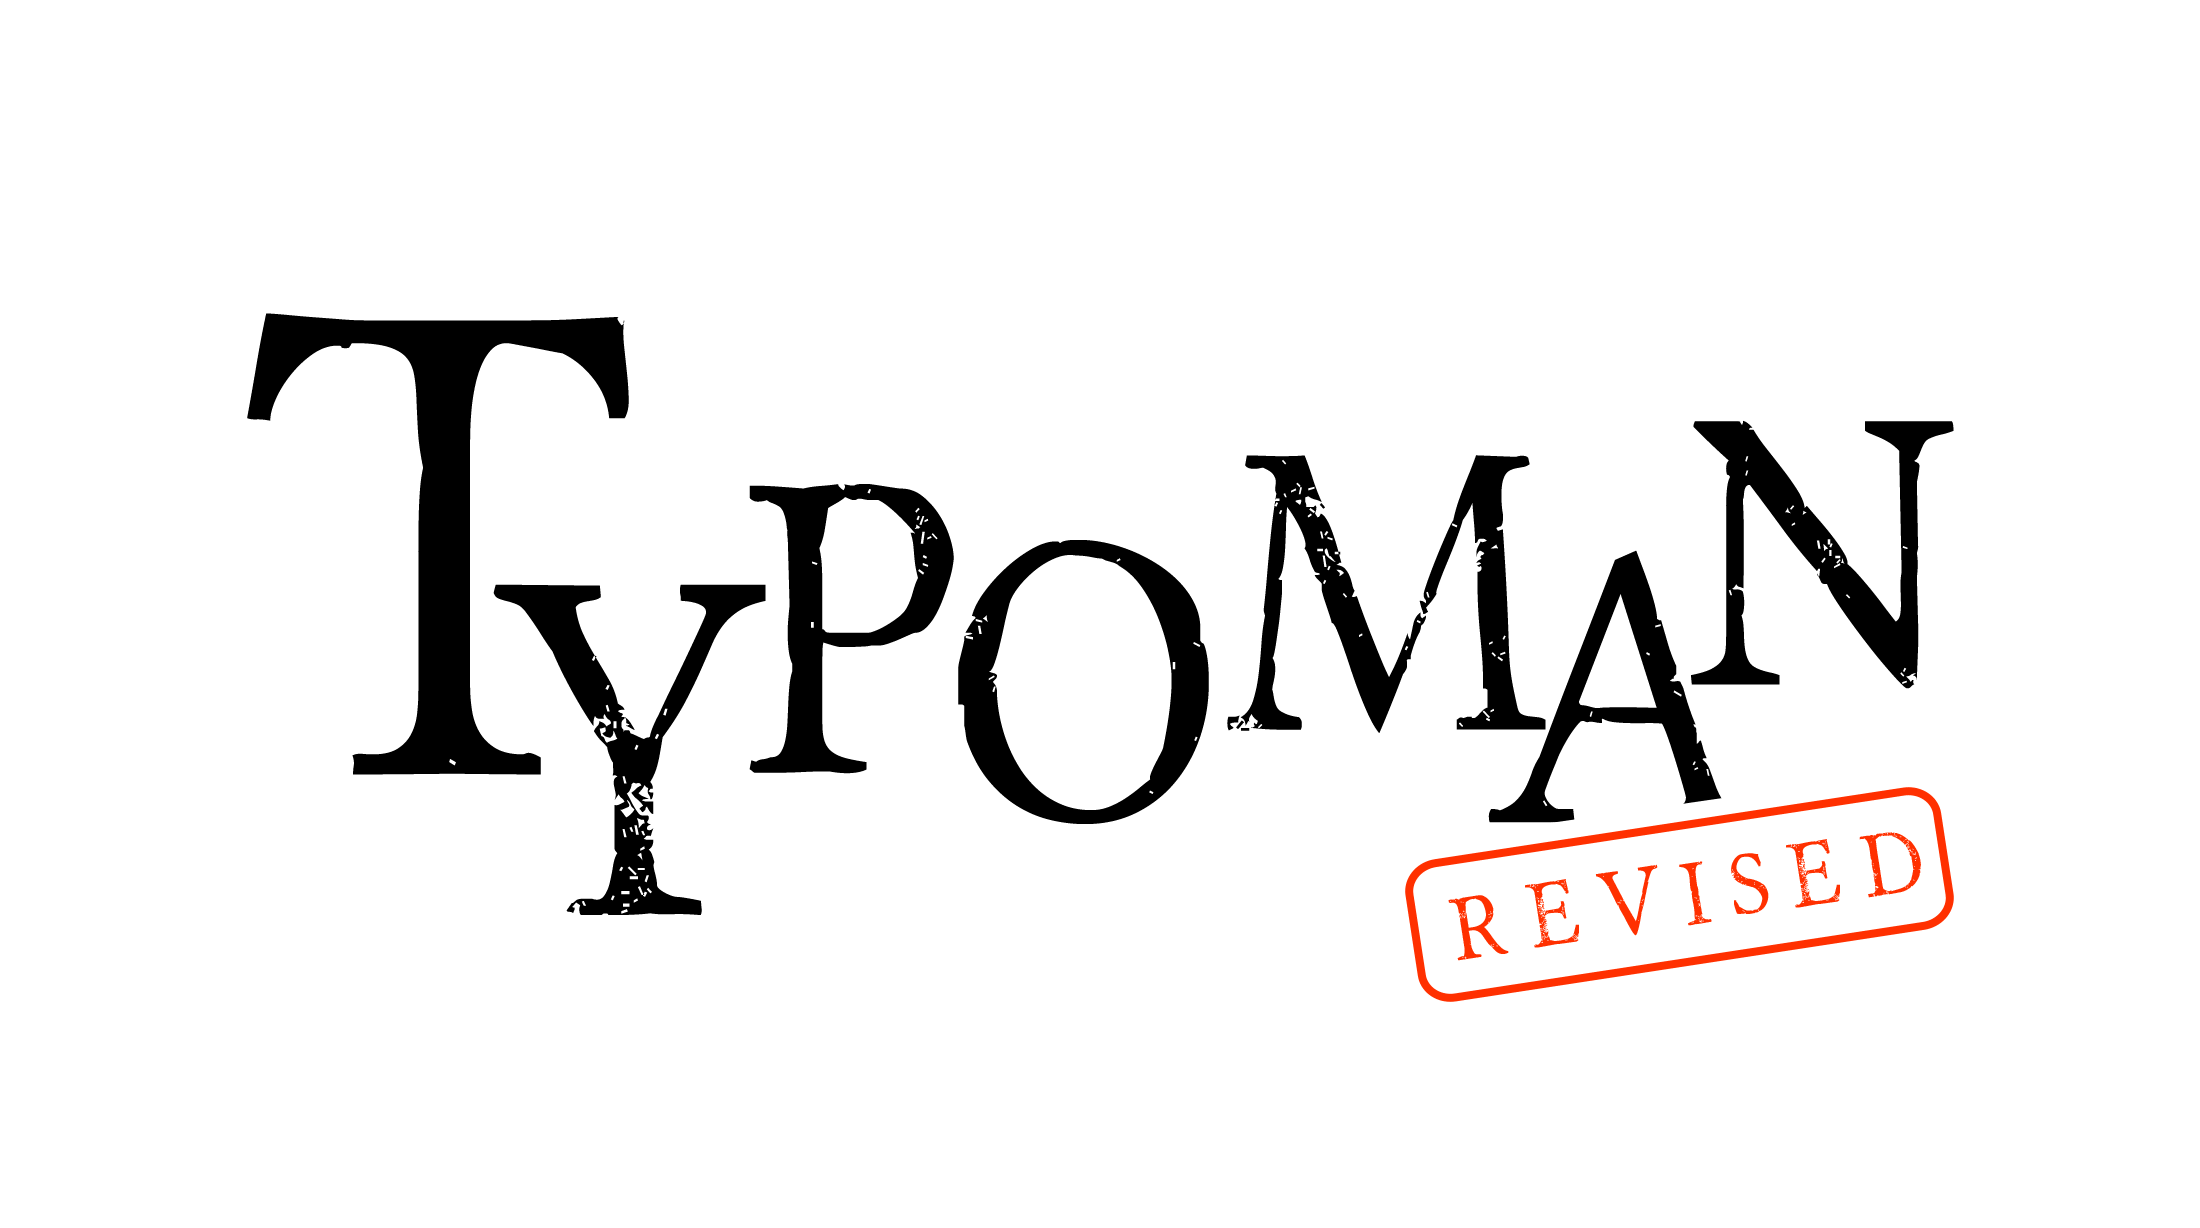 Typoman Revised Steam Release Date Announced Gaming Cypher